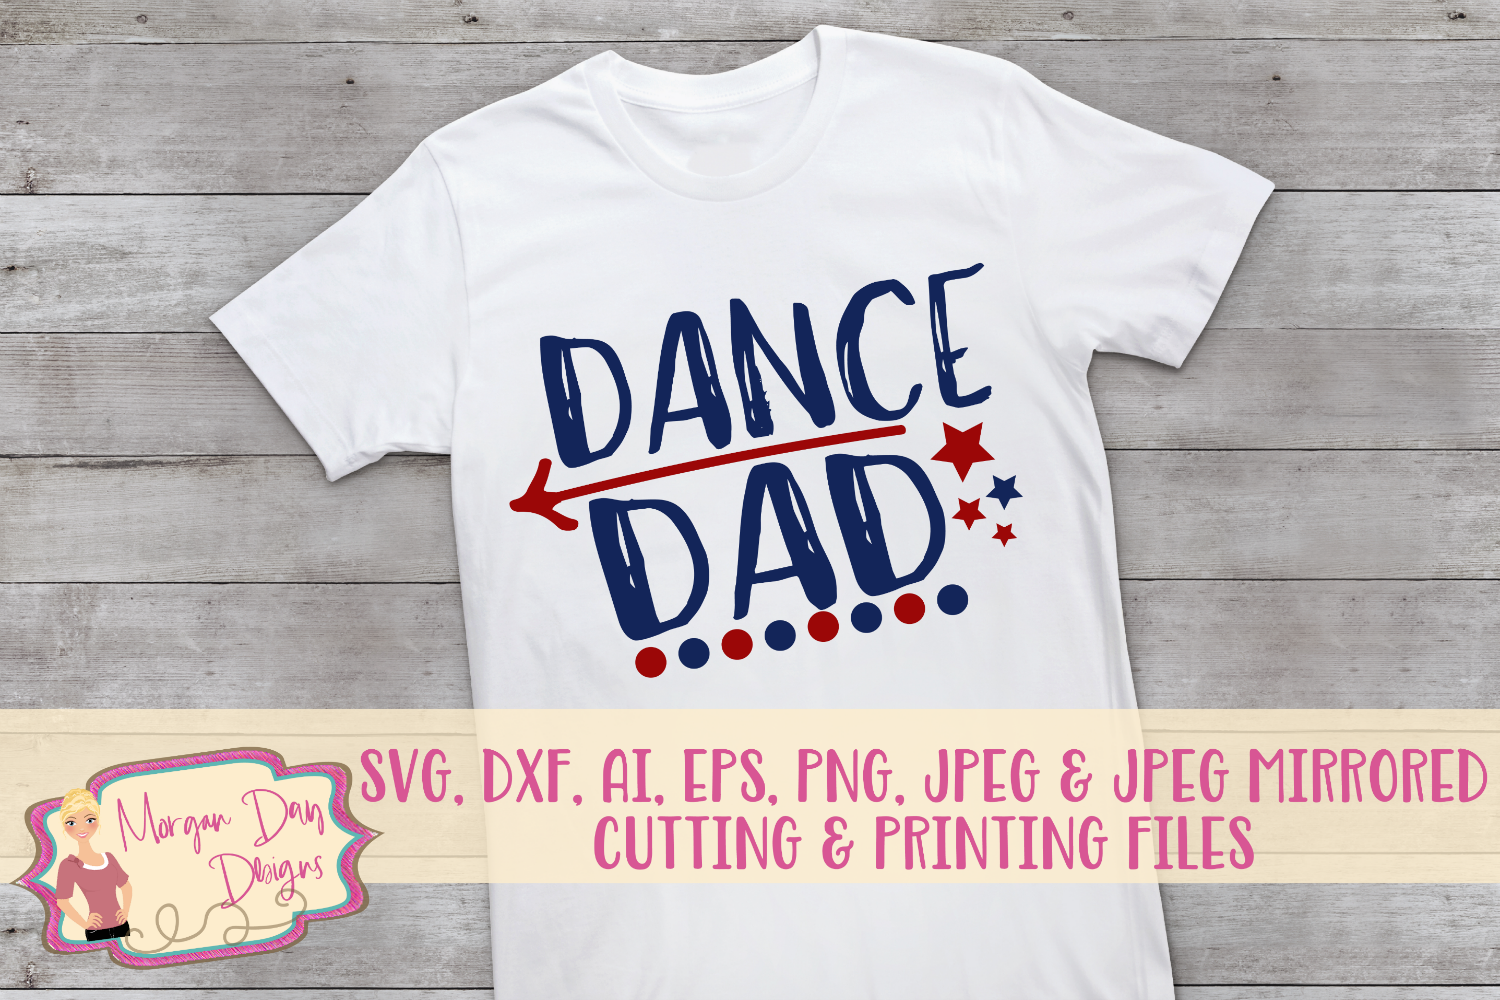 Dance Dad SVG, DXF, AI, EPS, PNG, JPEG example image 1